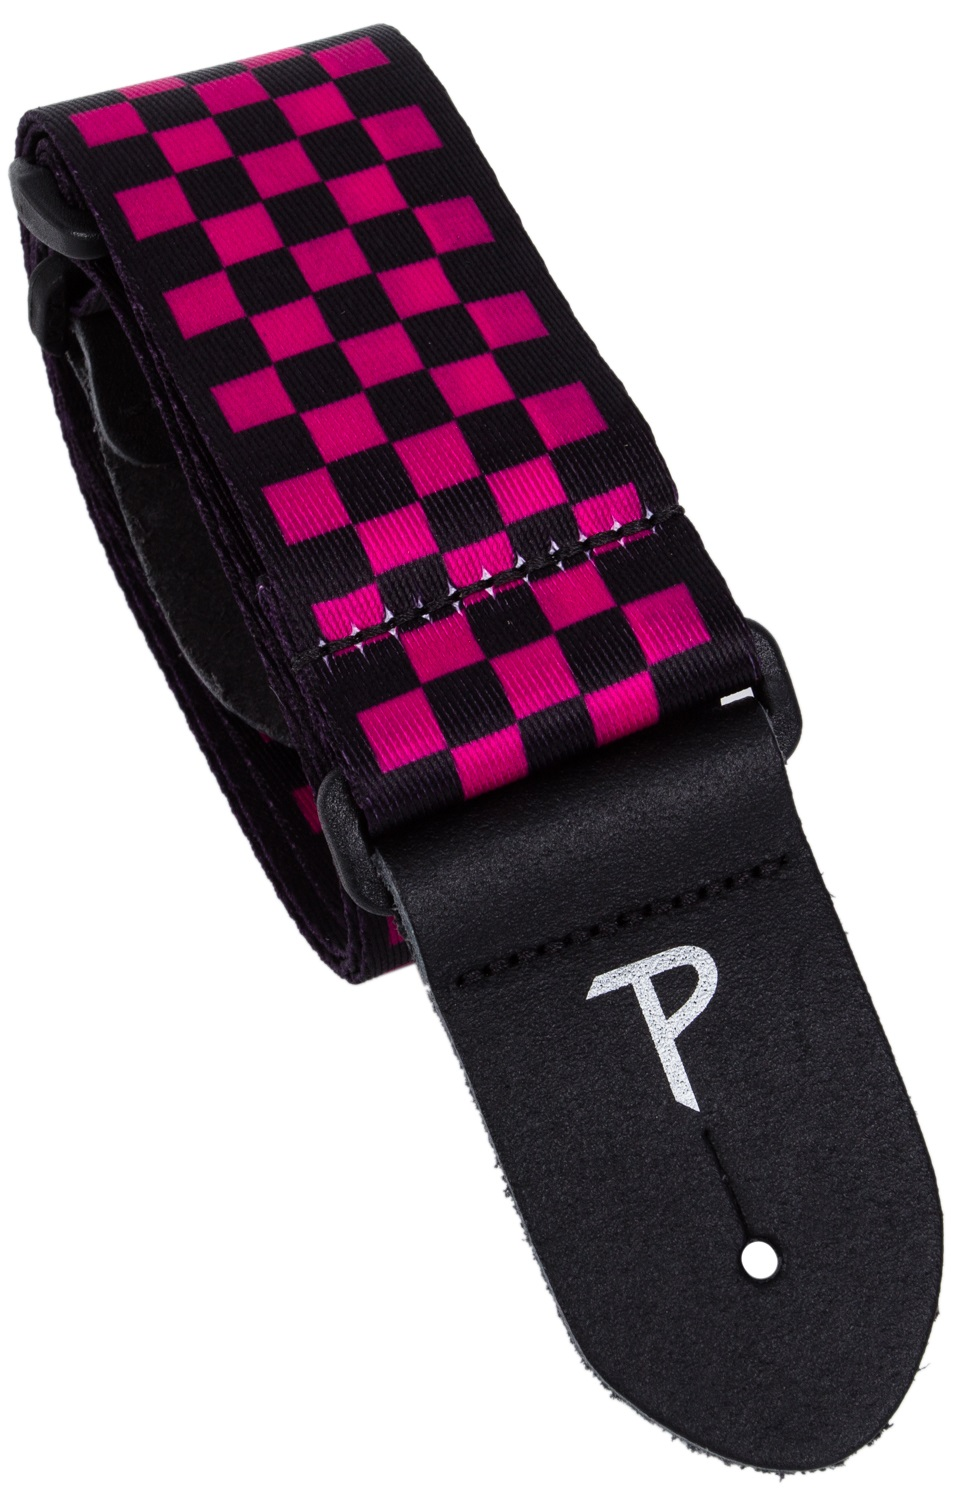 Perri's Leathers 590 Red-Black Checkers